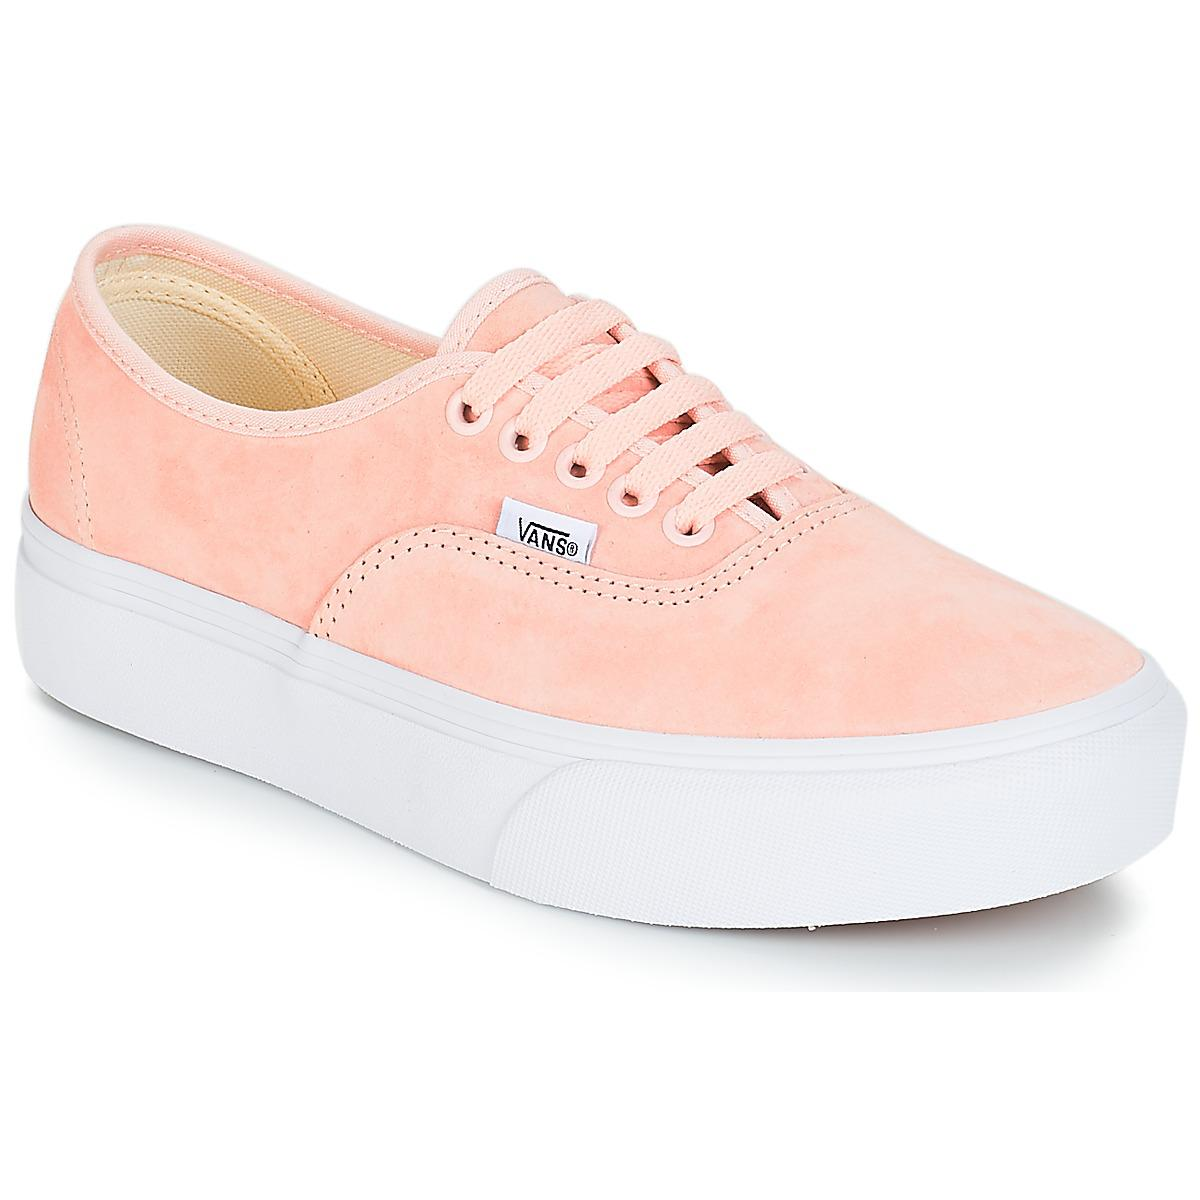 e66bcaa47a443 Vans Authentic Platform 2.0 Women s Shoes (trainers) In Pink in Pink ...